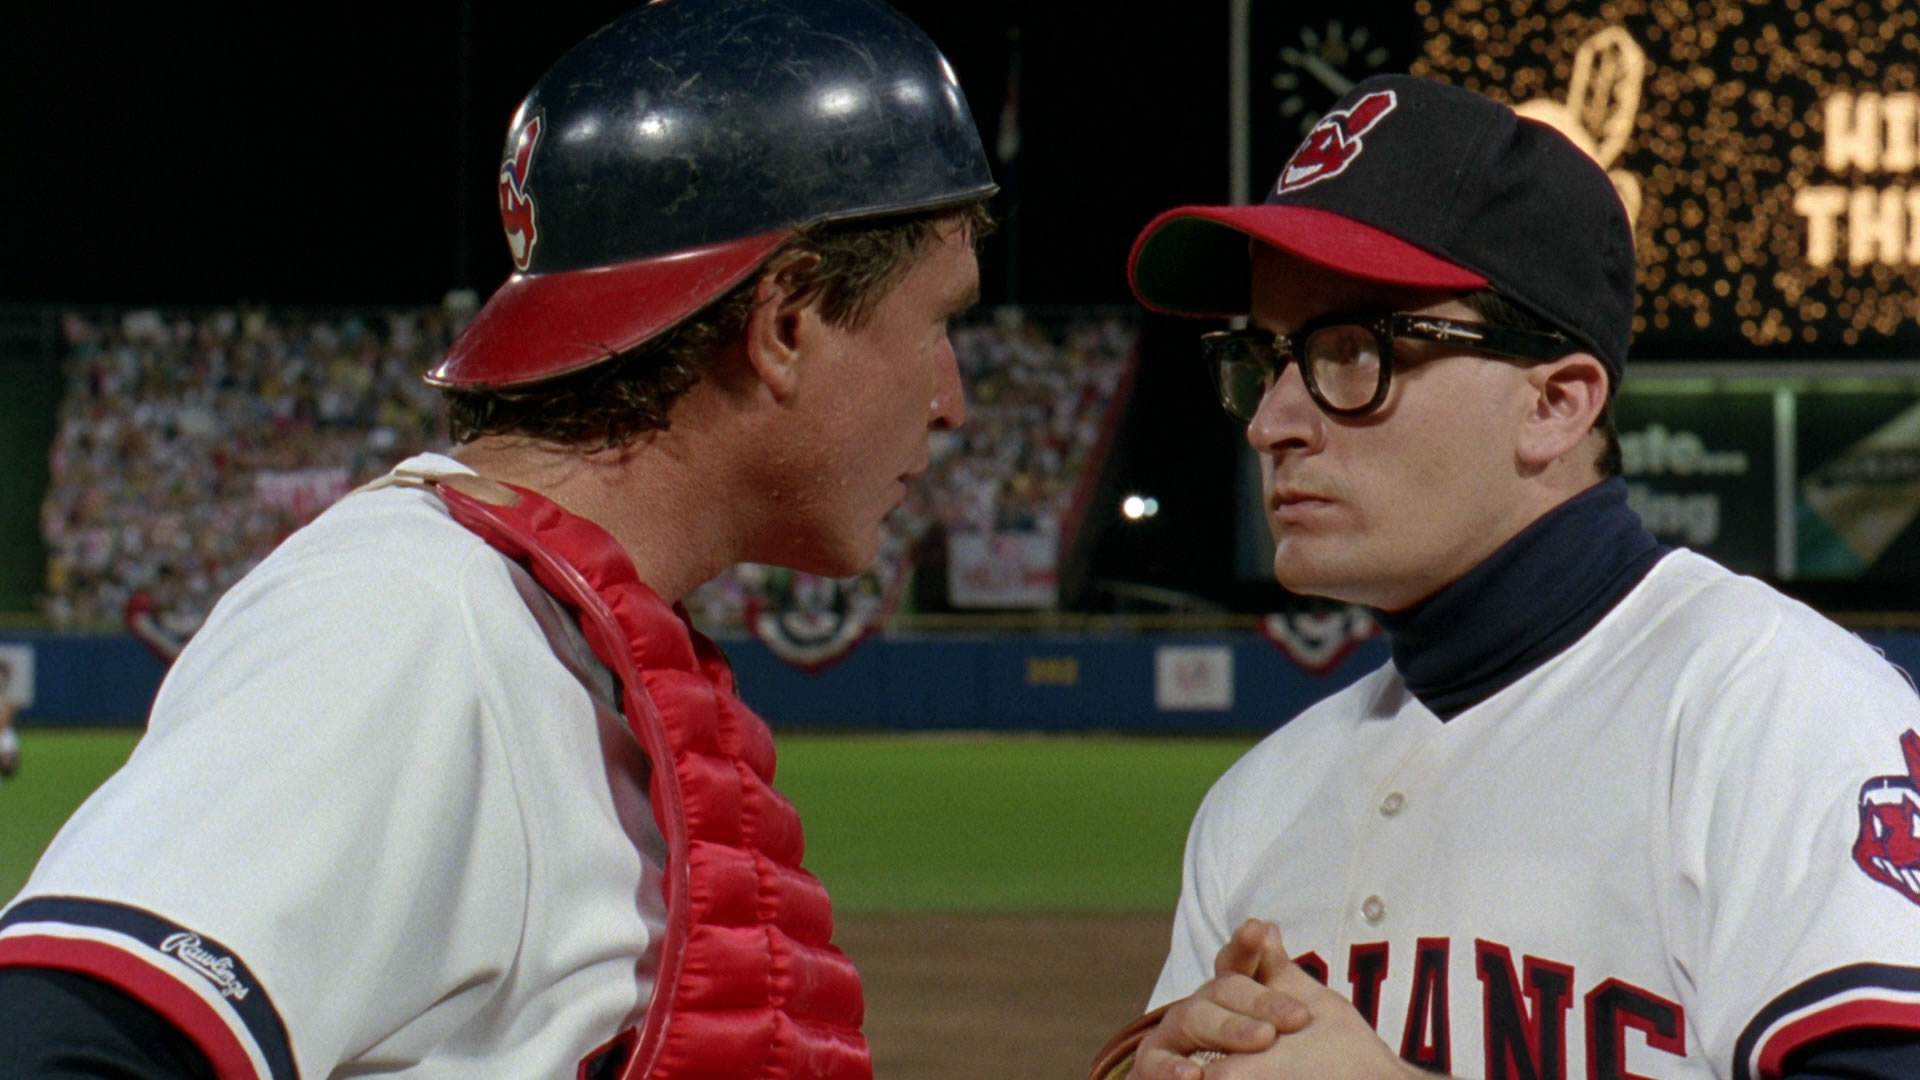 Major League Baseball Movie